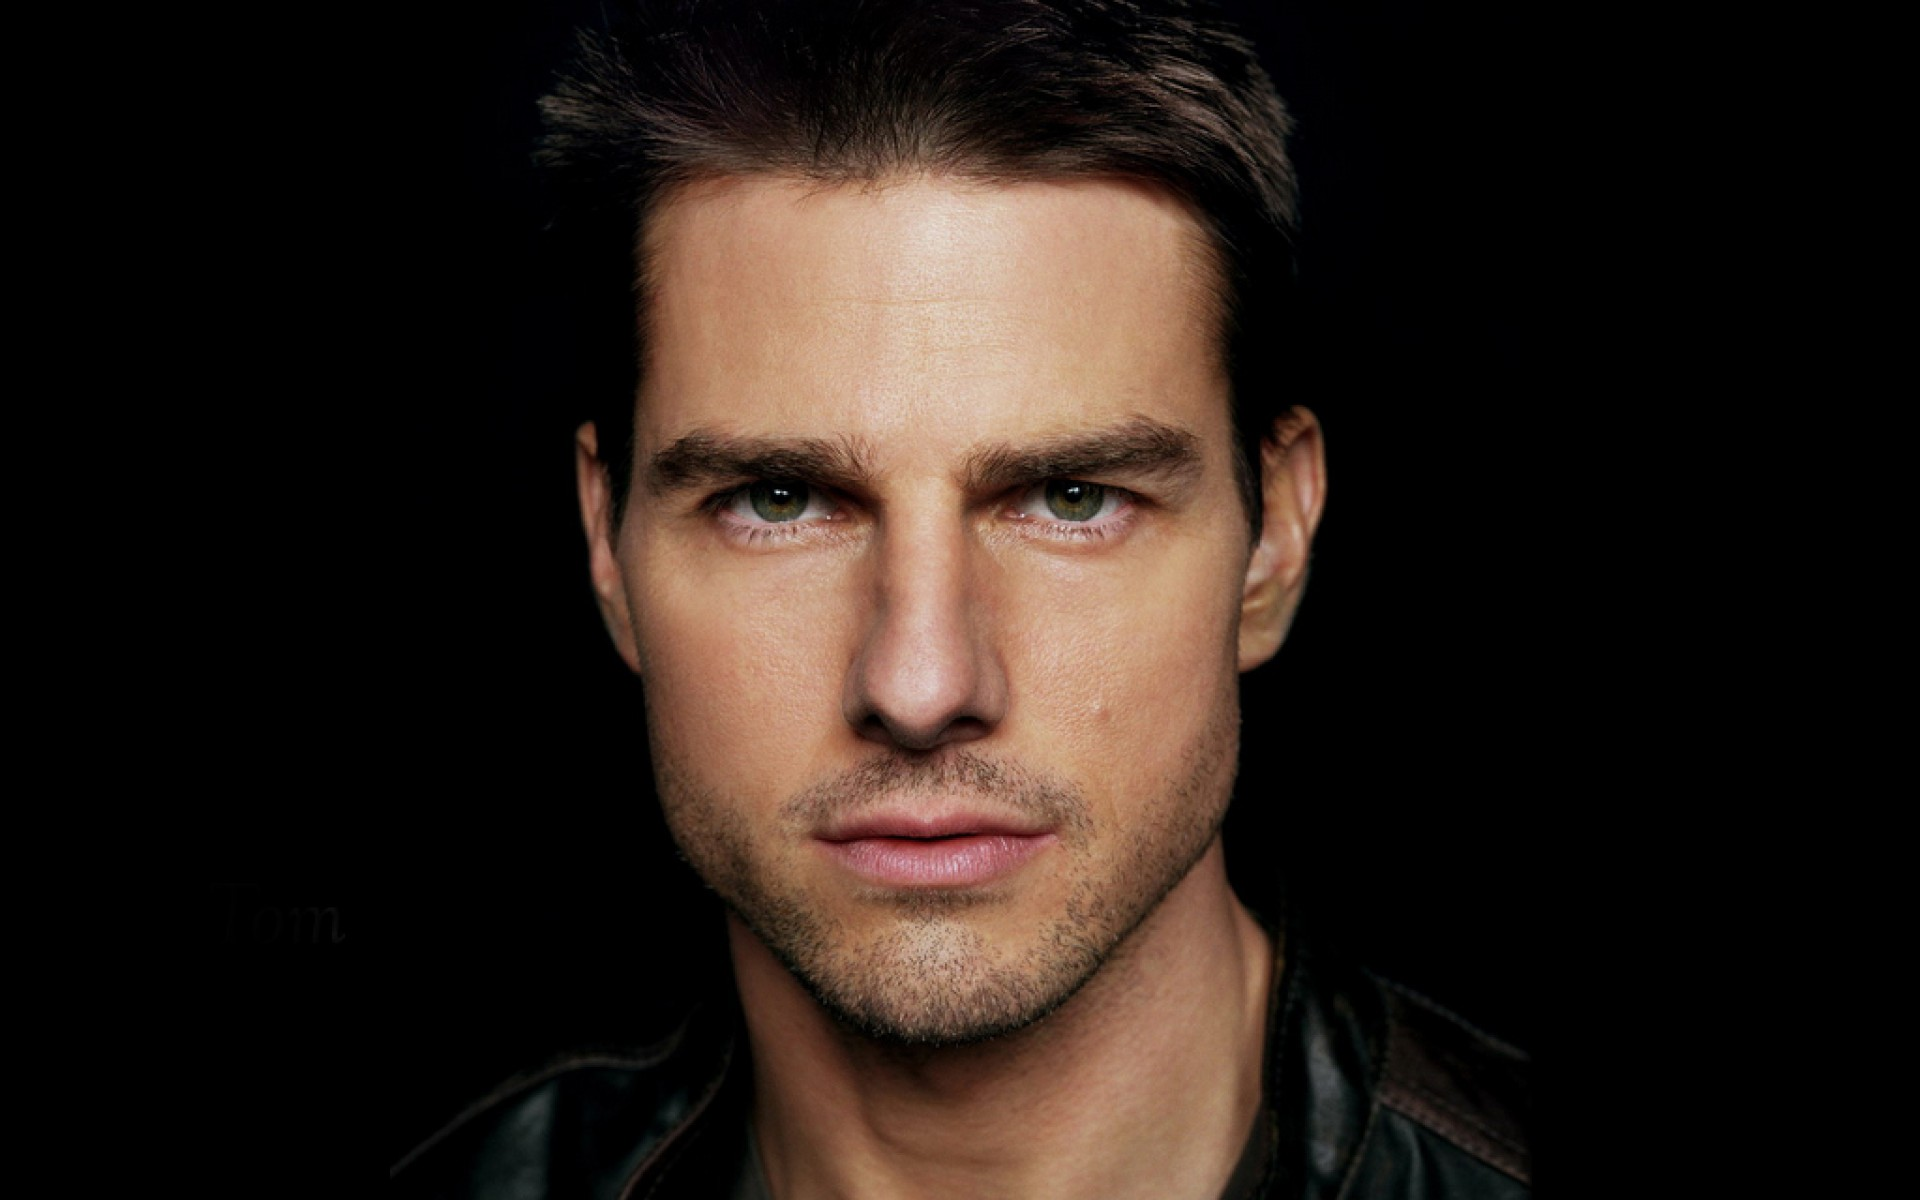 48 Views tom cruise widescreen hd wallpapers